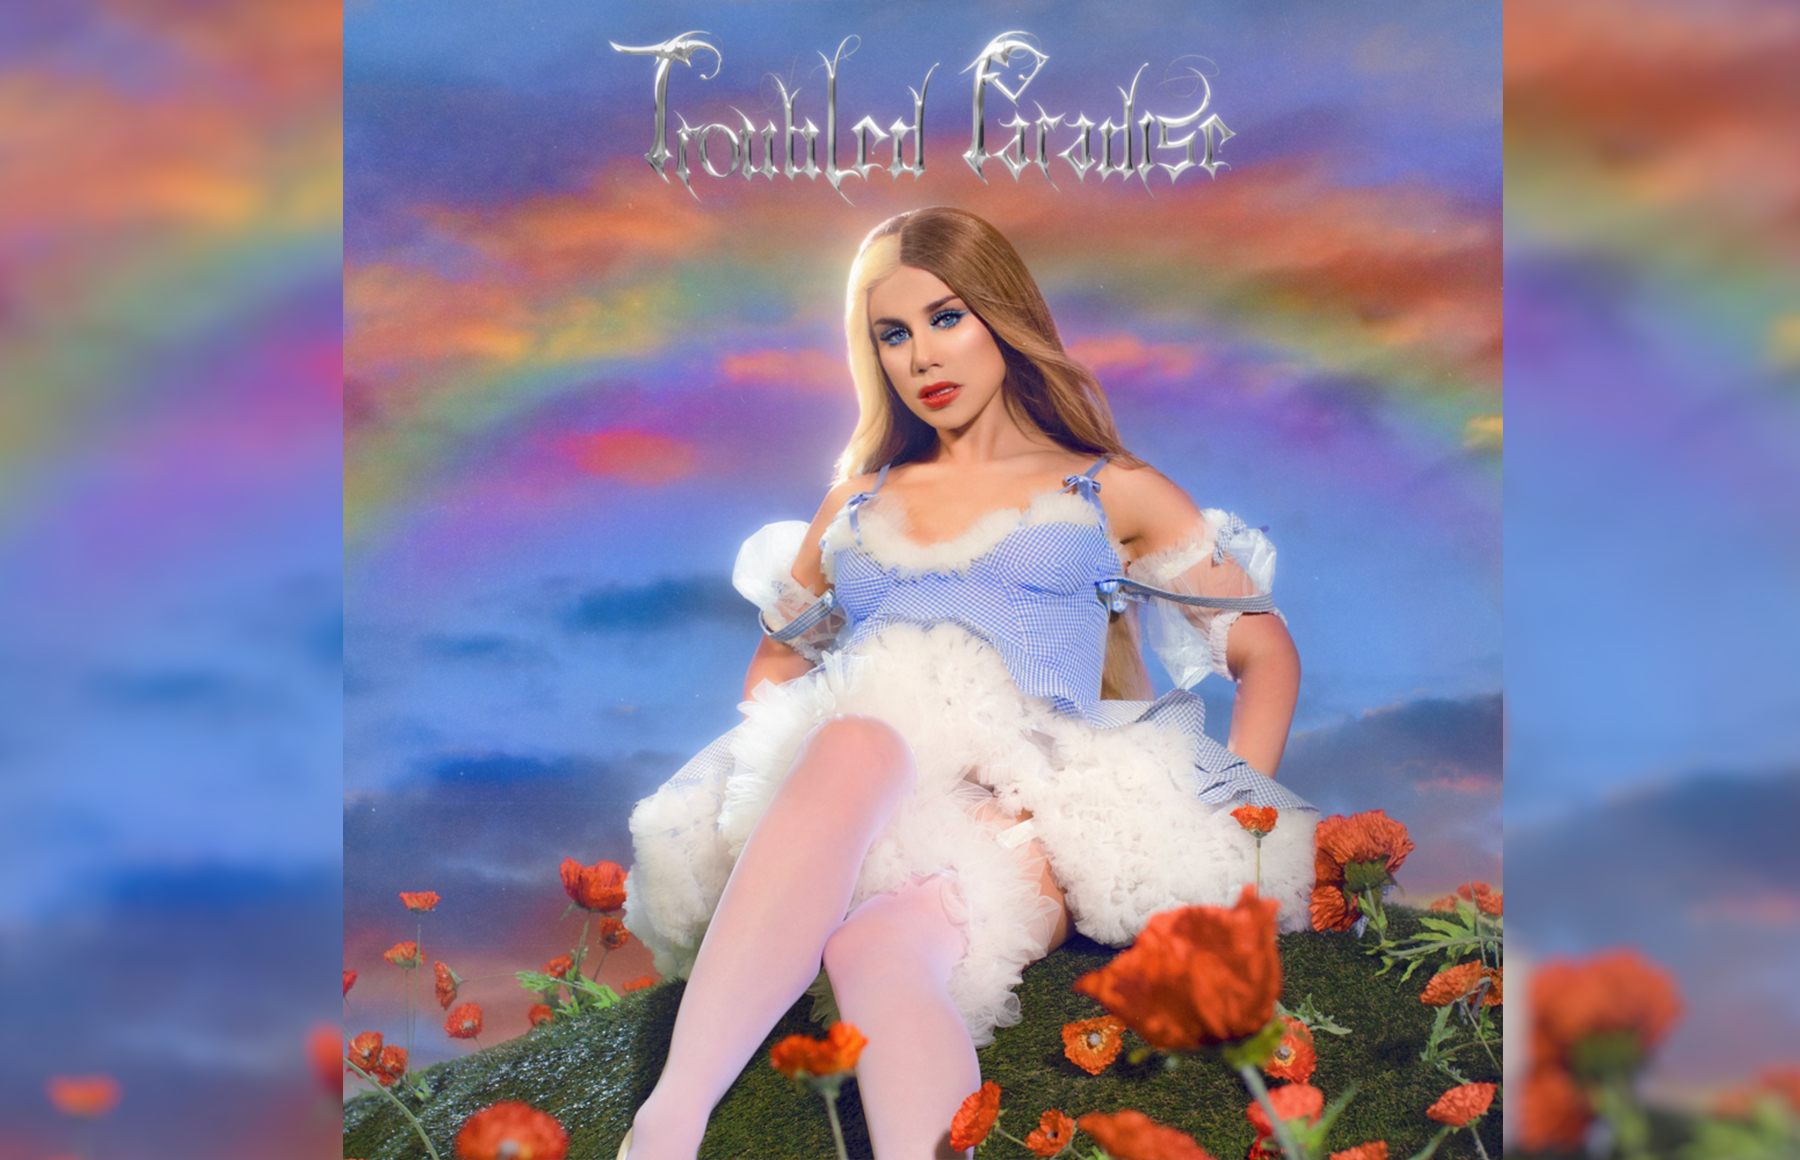 'Troubled Paradise' cements Slayyyter as a pop music force to be reckoned with